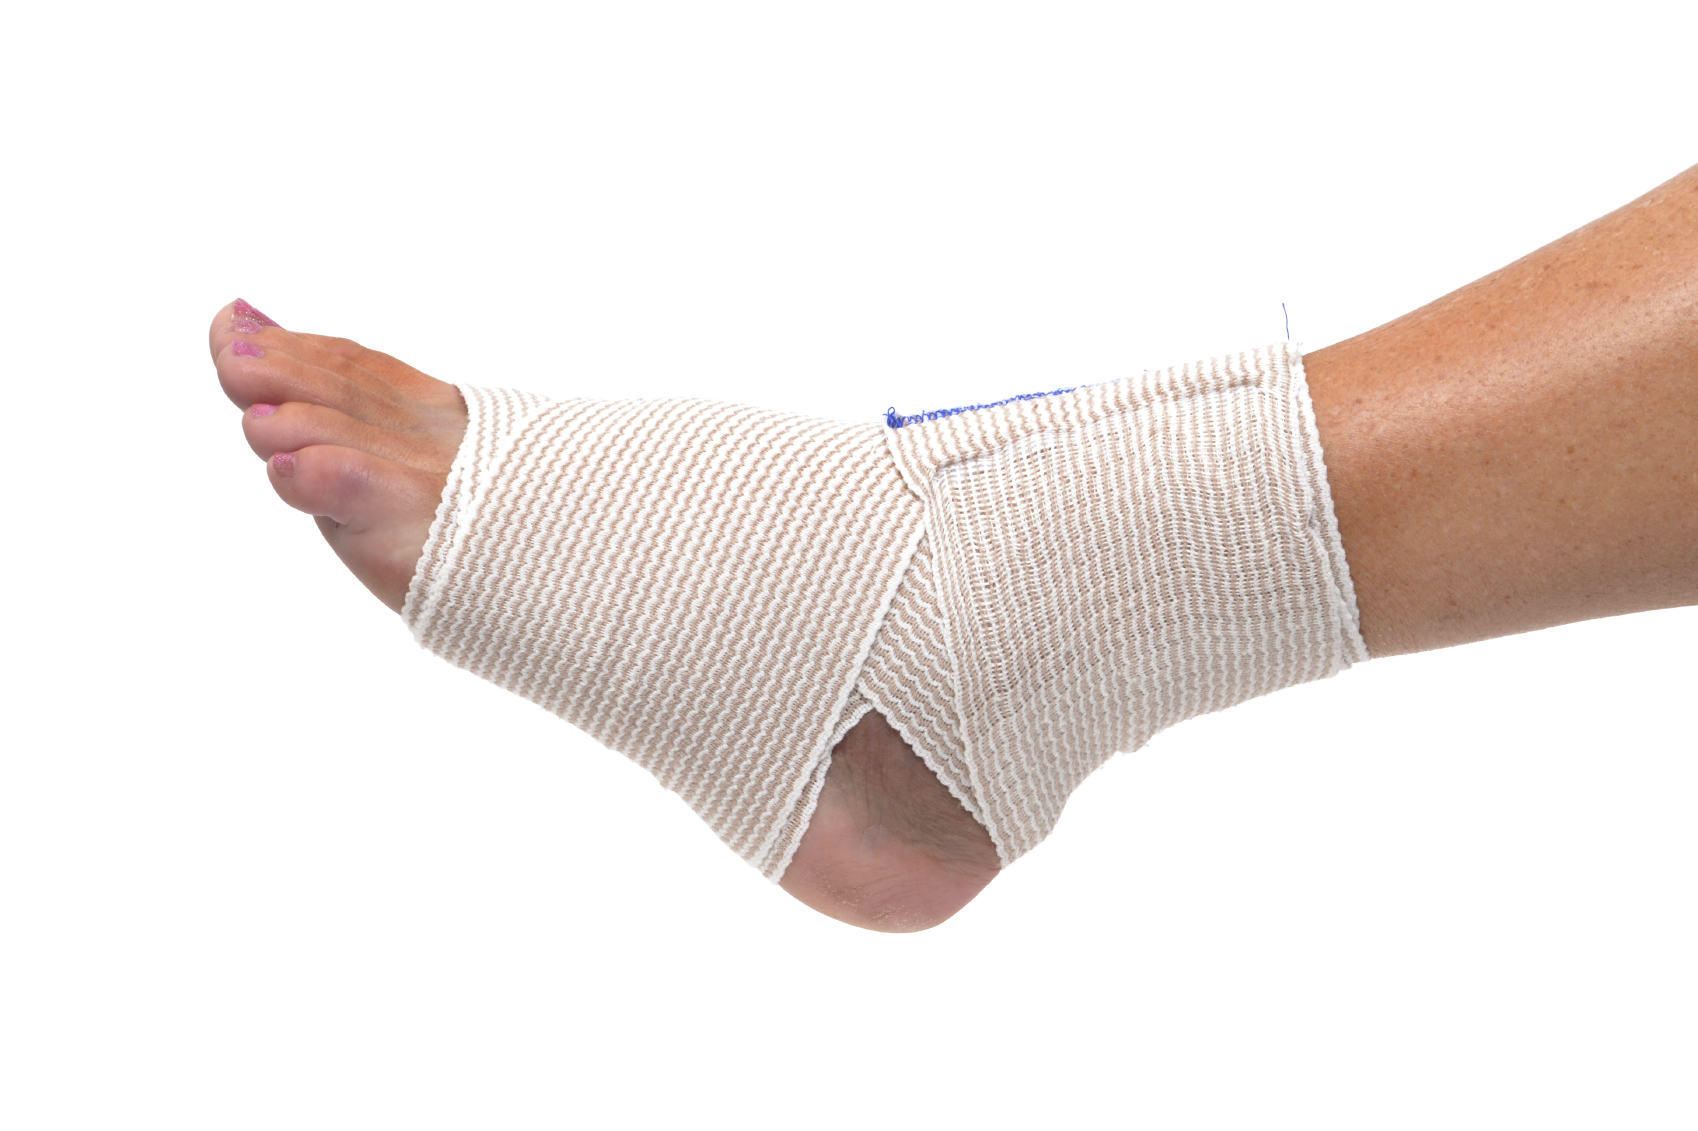 Soft tissue injuries - What are they & how can you best recover